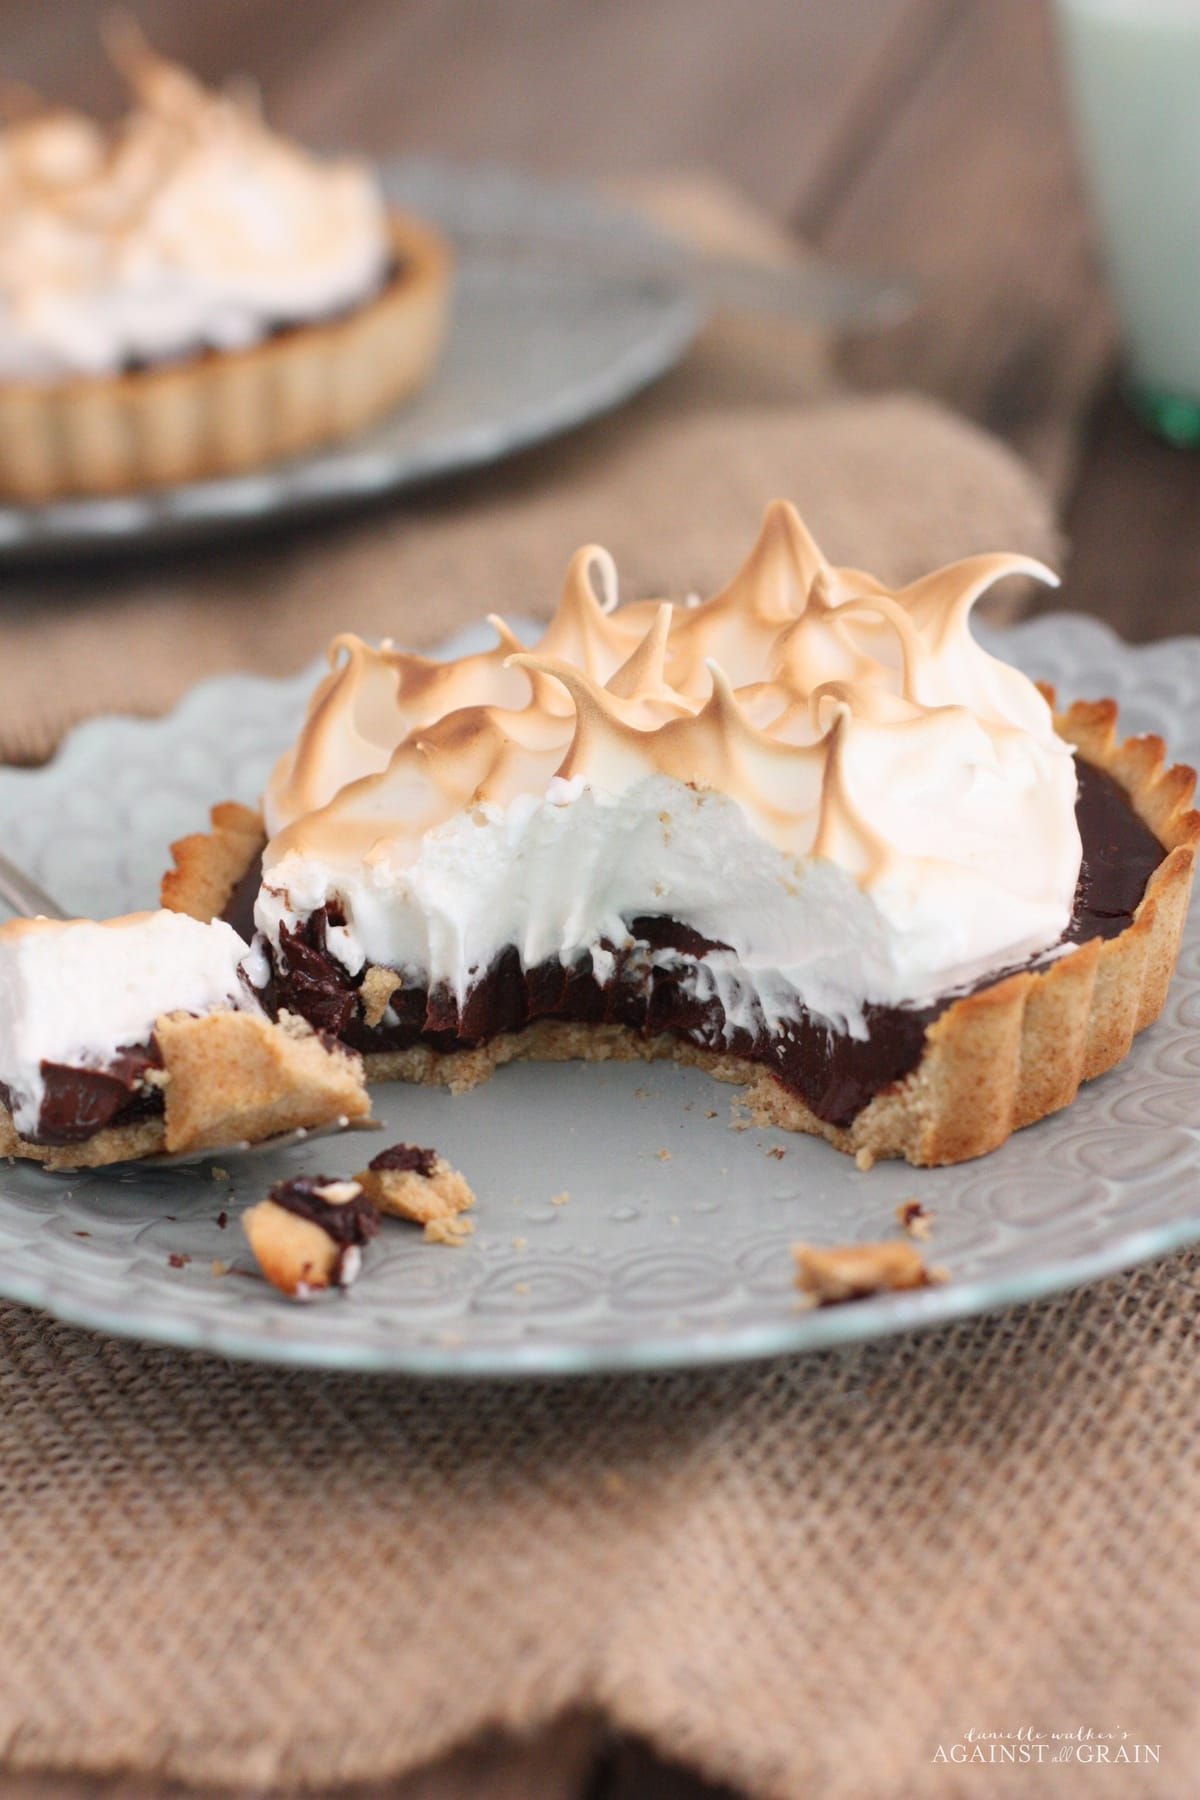 Marshmallow S'more Tart served on a white plate with a scalloped edge design; partially eaten